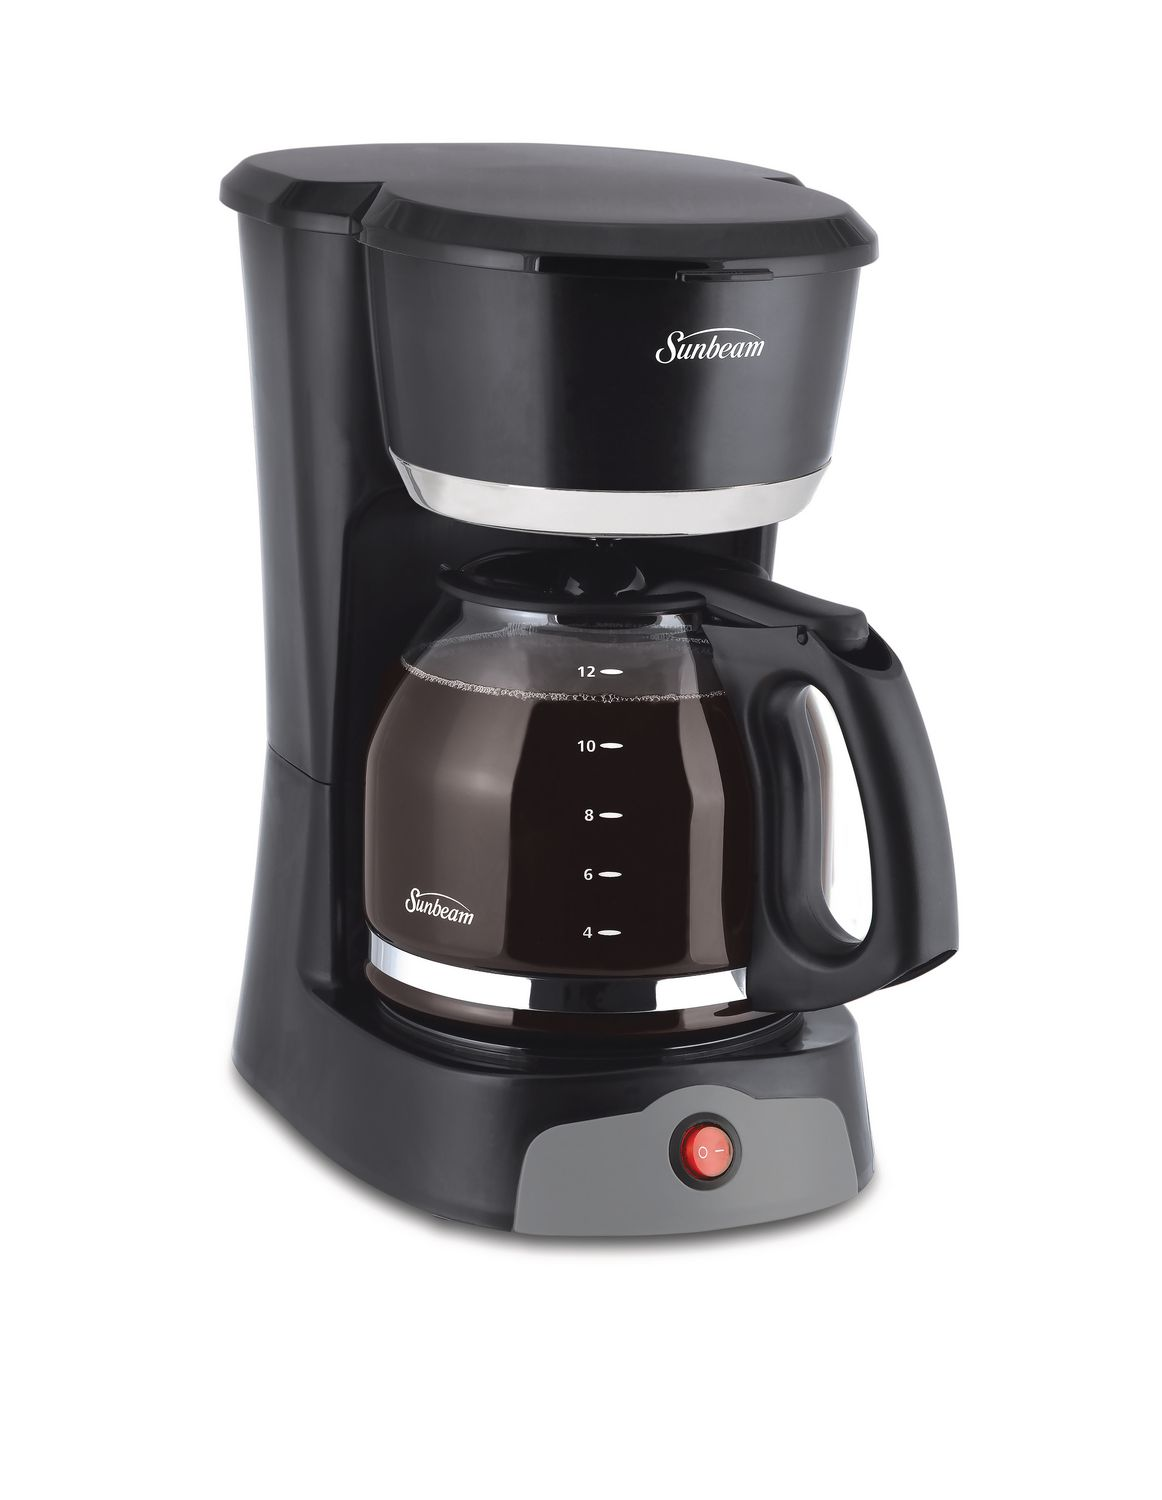 Sunbeam 12 Cup Black Switch Coffee Maker | Walmart Canada